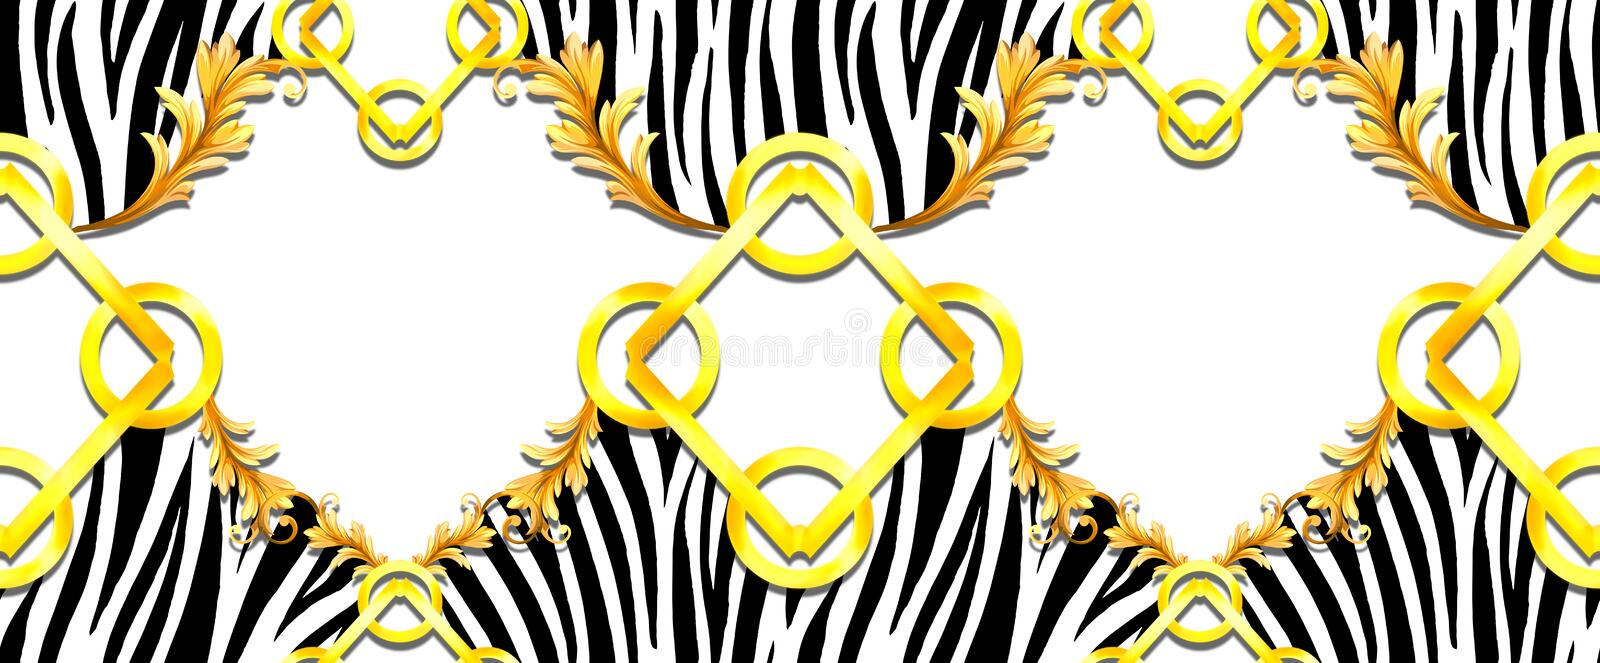 Seamless Golden Baroque with Zebra Pattern on Black Background. Ready for Textile Prints. Silk Scarf Pattern.  royalty free illustration